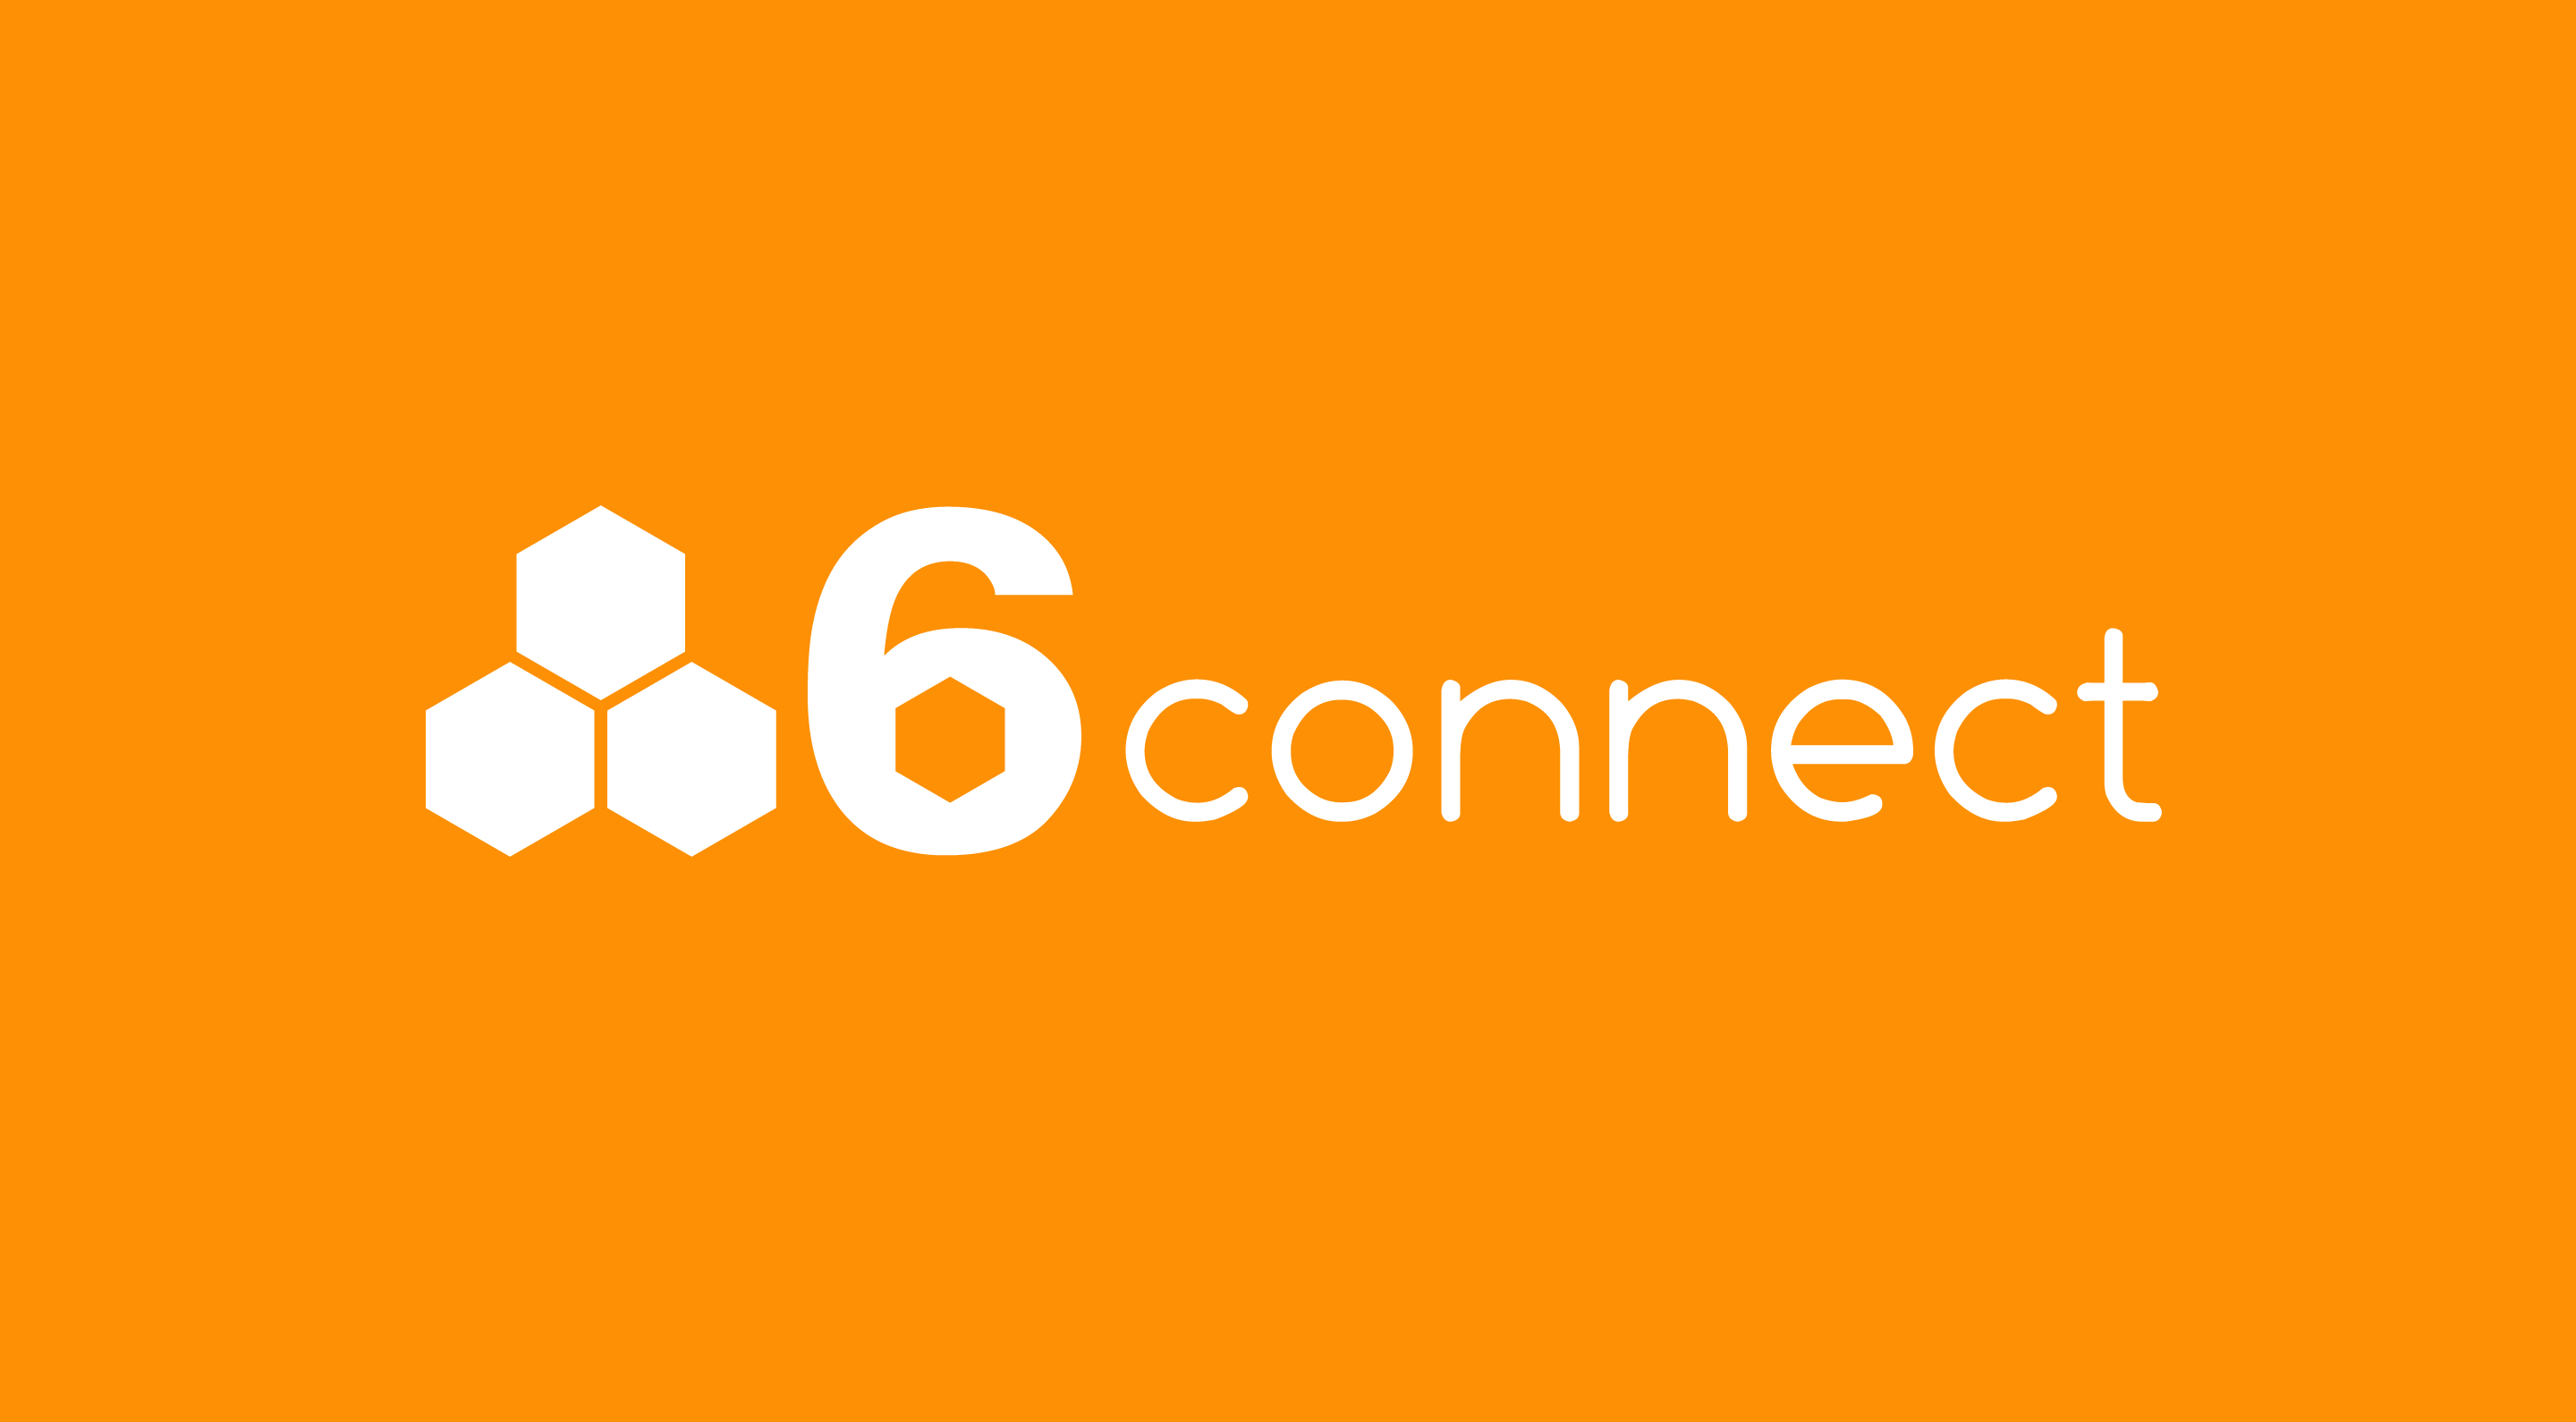 6Connect